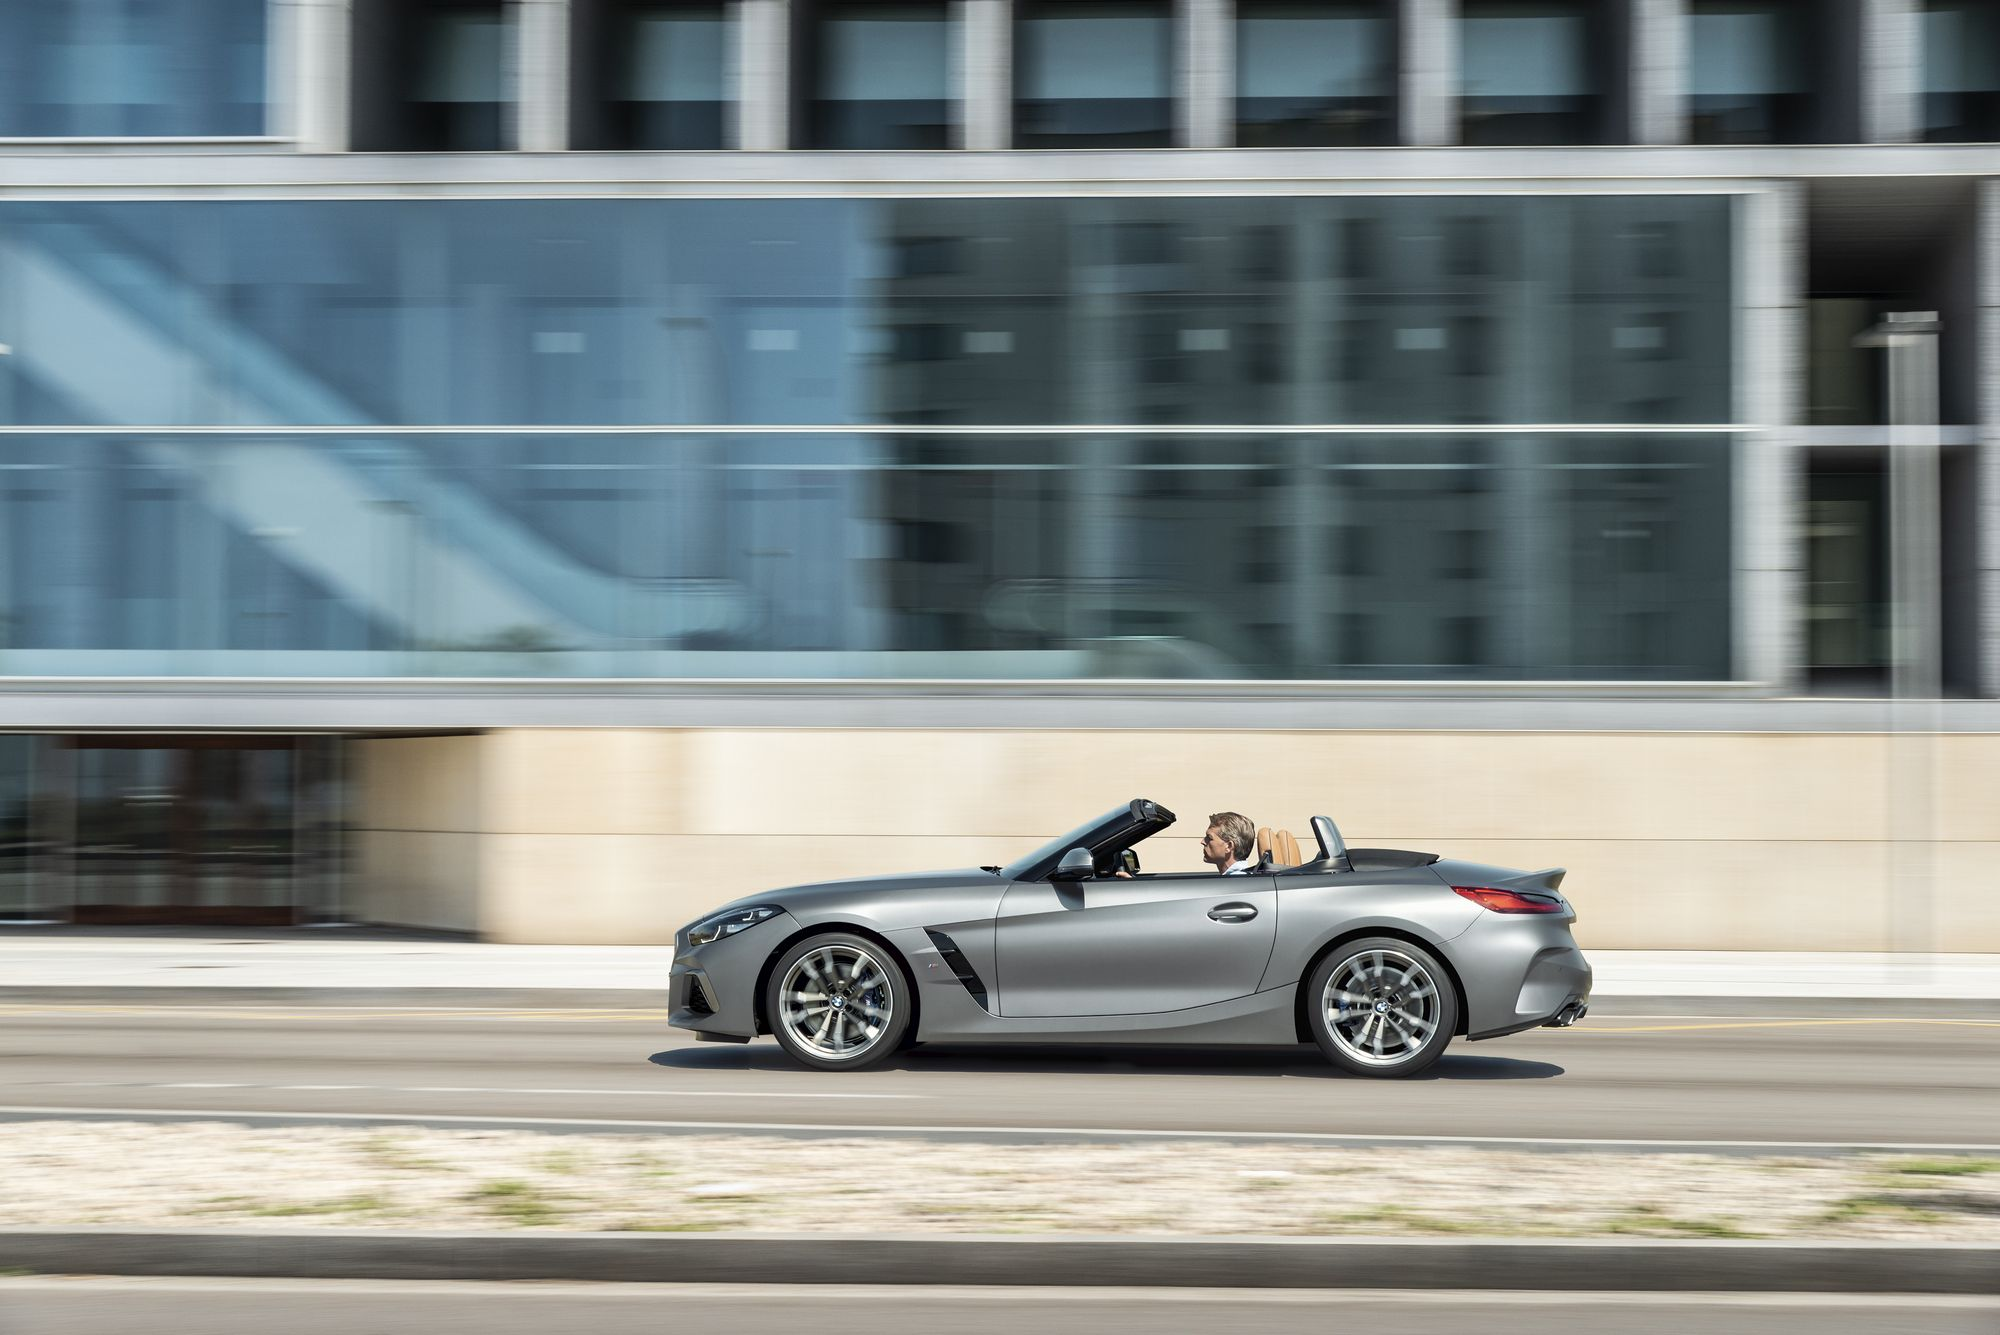 2019 BMW Z4 16 - BMW 2019 Z4 sDrive side view 4k - bmw z4 side background, bmw 2019 z4 side backgraound, 2019-BMW-Z4 side view